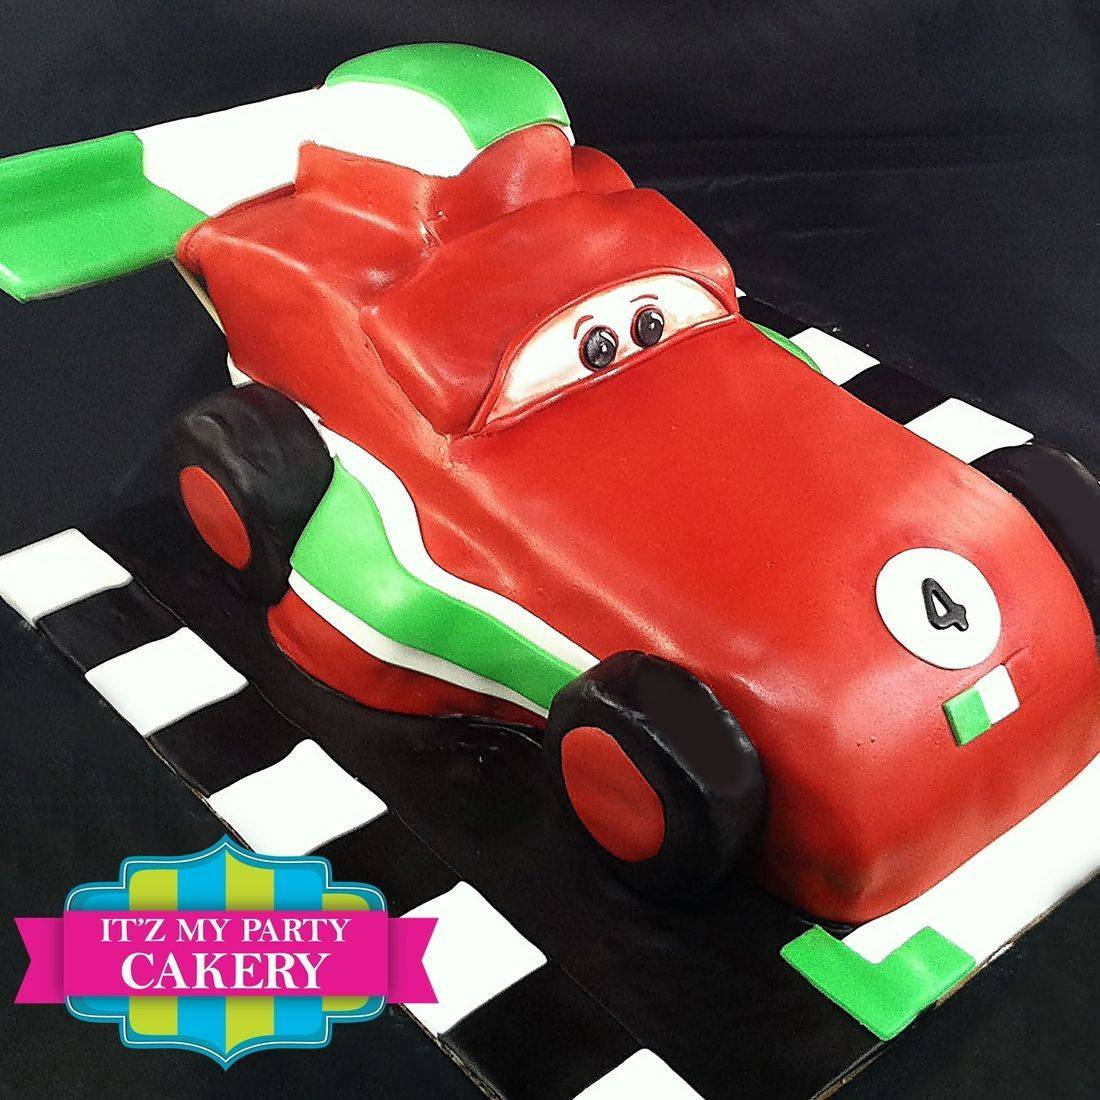 Red Sports Car Cake Carved Dimensional Cake Milwaukee